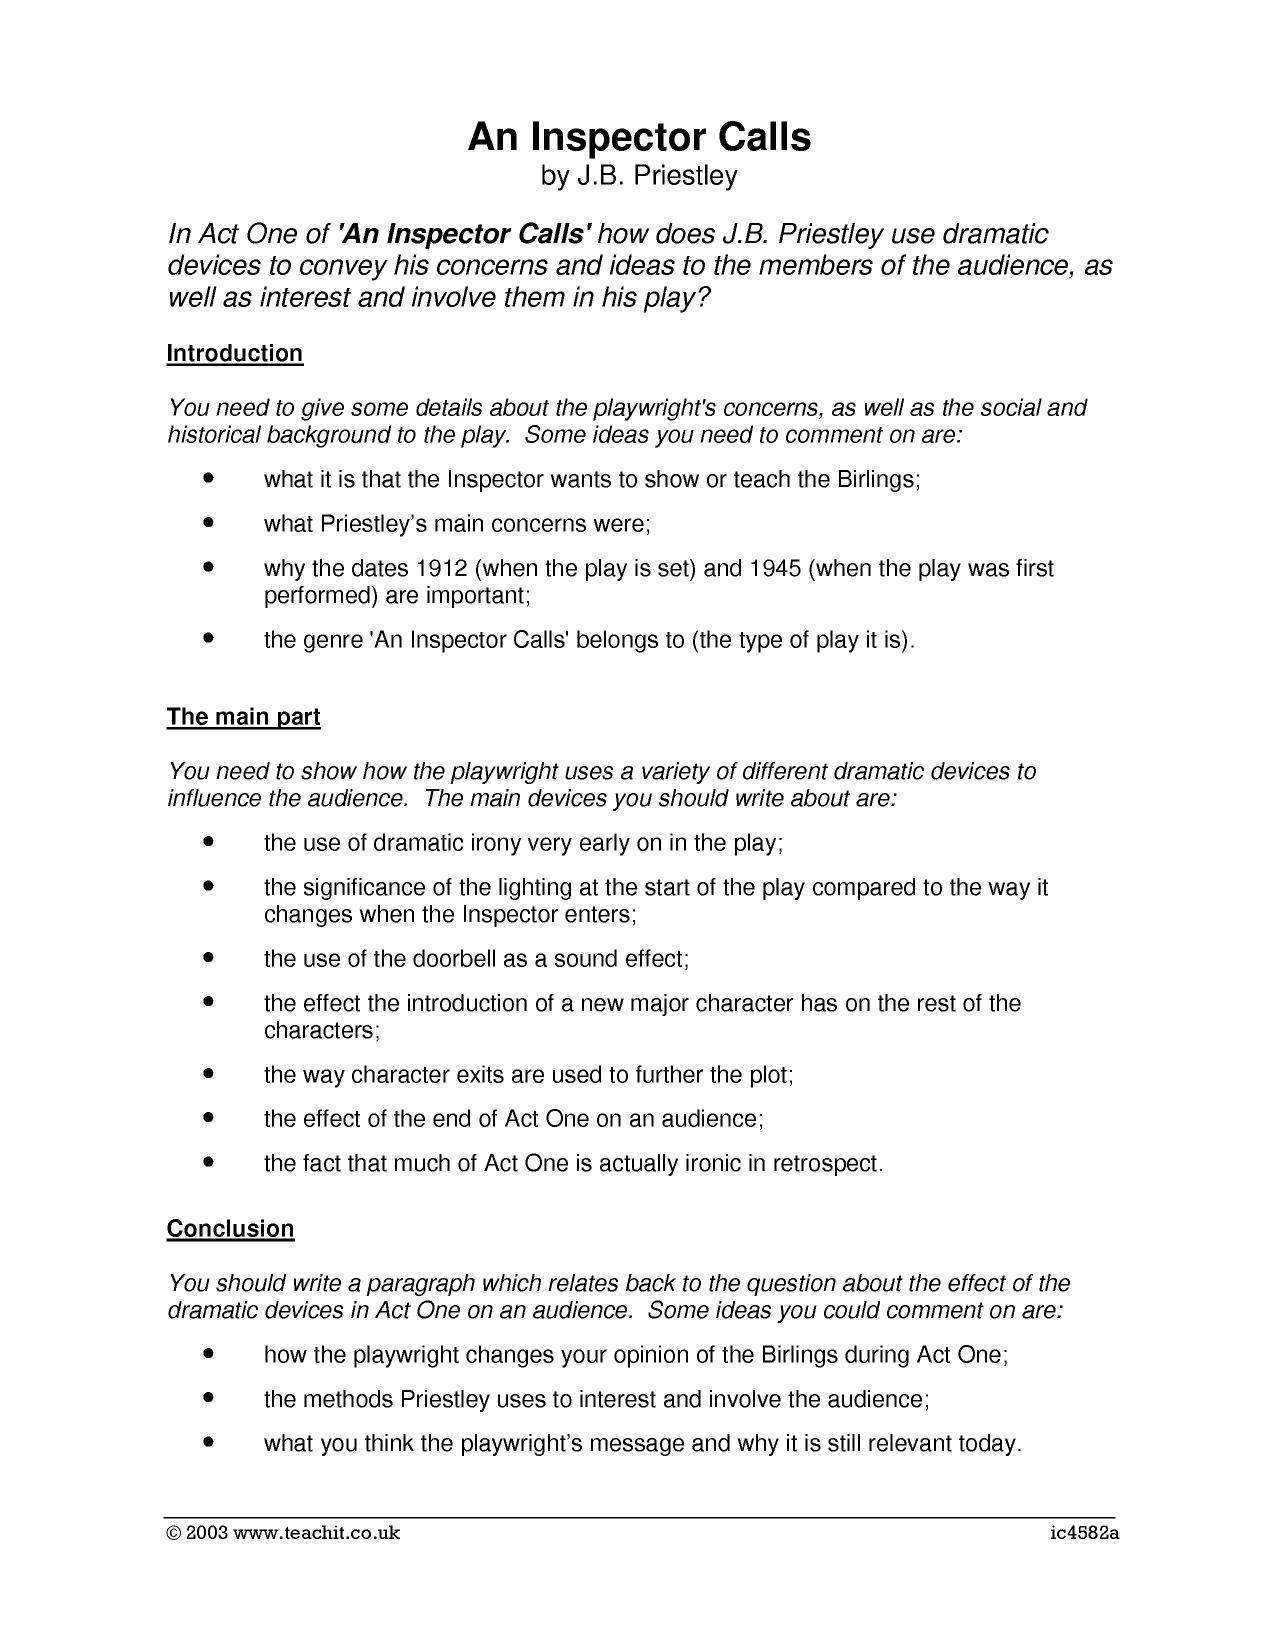 Science And Technology Essay Topics The Inspector Calls Essay Need Someone Capable To Write My Essay For Me  Online Purchase  History Of English Essay also Essay Proposal Outline The Inspector Calls Essay  Barcafontanacountryinncom Yellow Wallpaper Analysis Essay